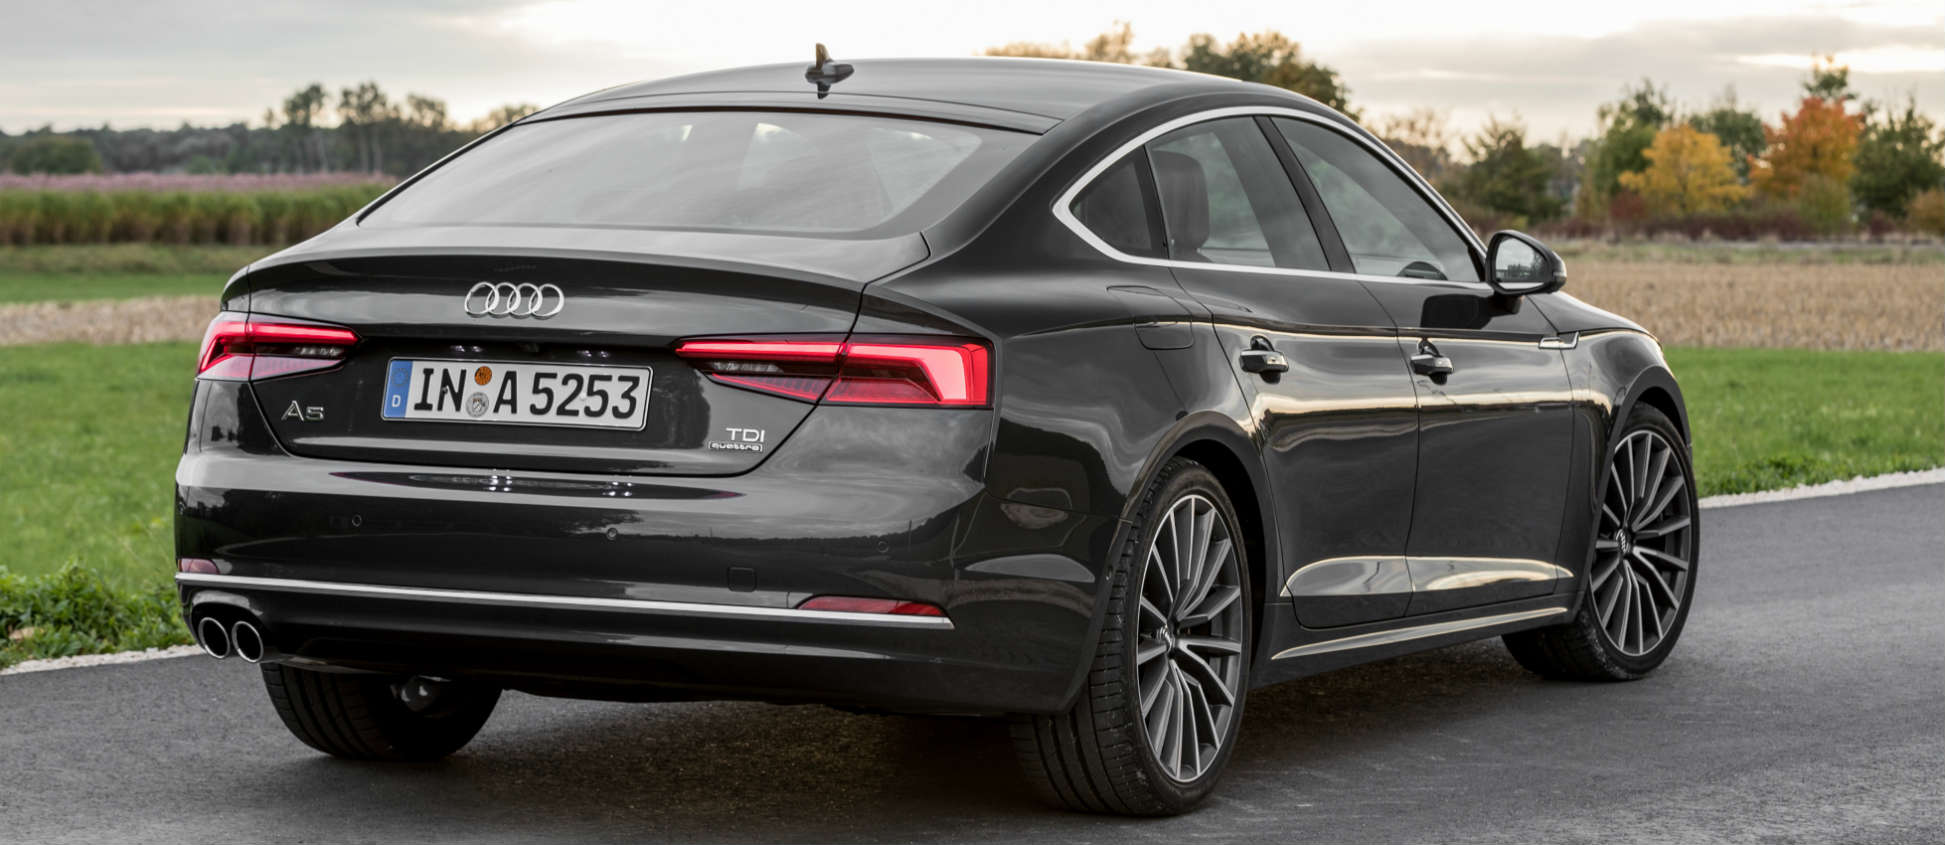 all new audi a5 coup and sportback models in shape for uk debut drive time. Black Bedroom Furniture Sets. Home Design Ideas